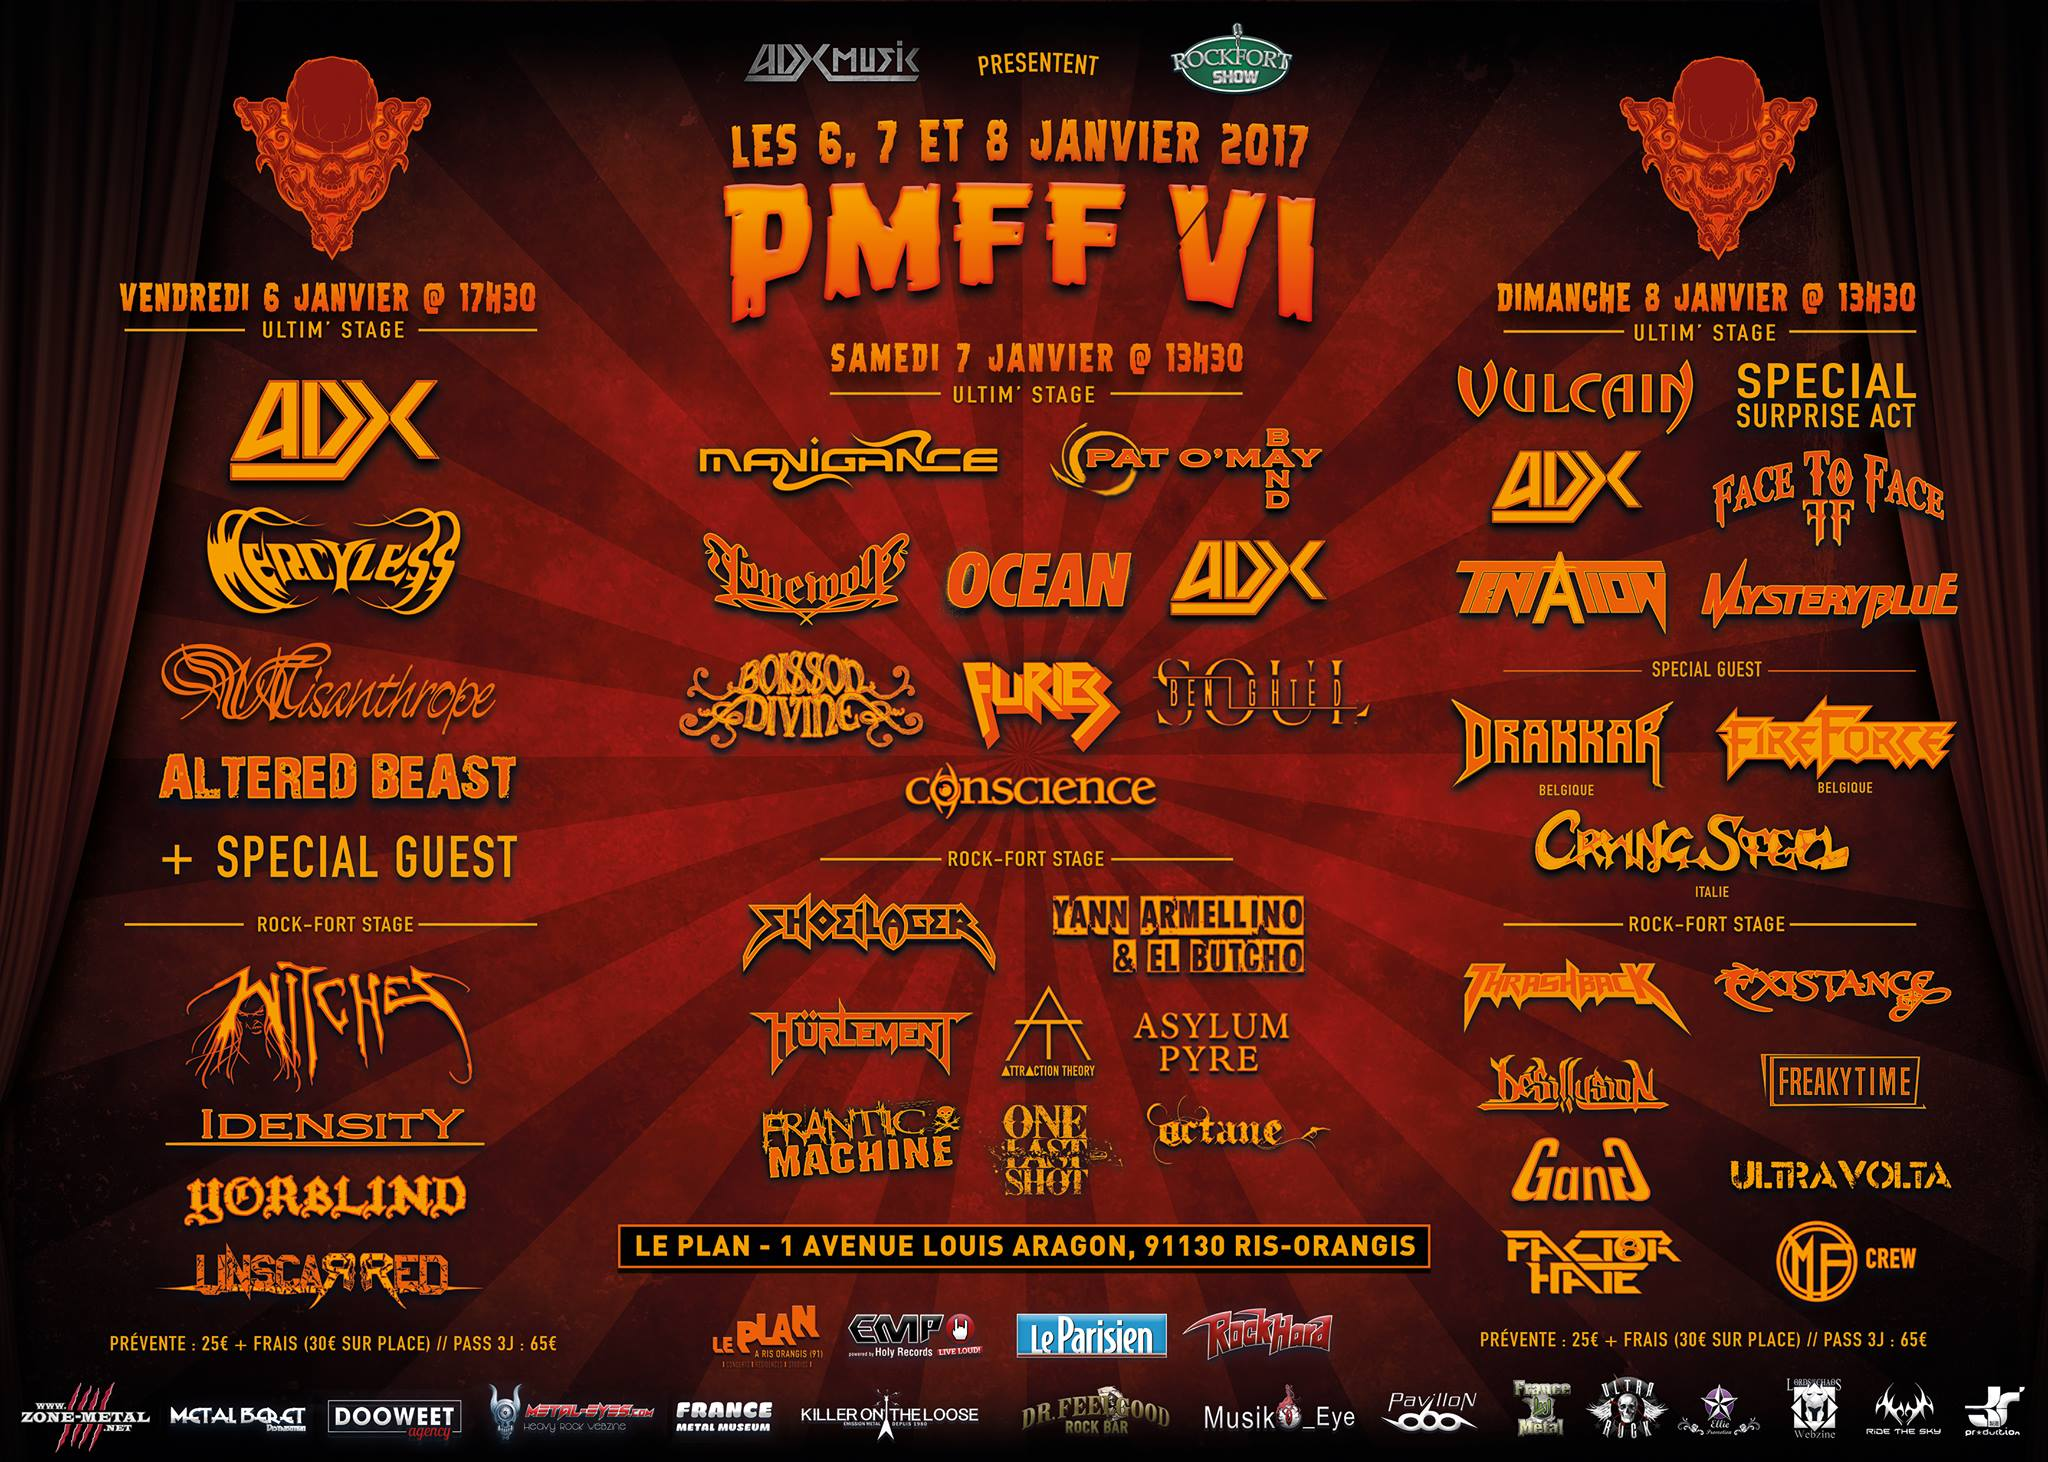 Witches flyer Mercyless, Witches, ADX, Misanthrope, Altered Beast, Yorblind, Idensity​, Unscarred @ Paris Metal France Festival - PMFF #6 Le Plan Ris Orangis (91)